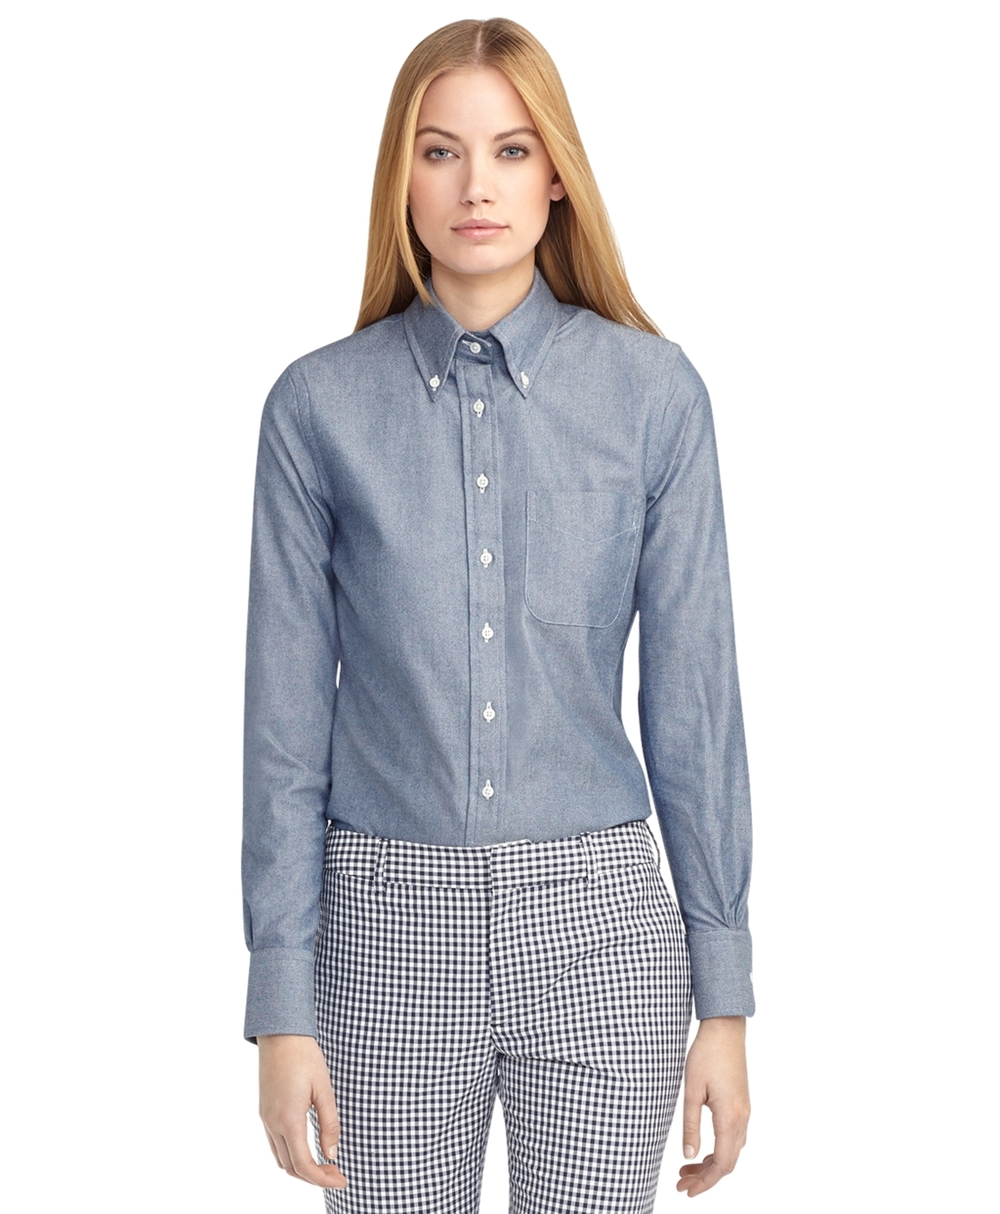 Women Collared Shirt